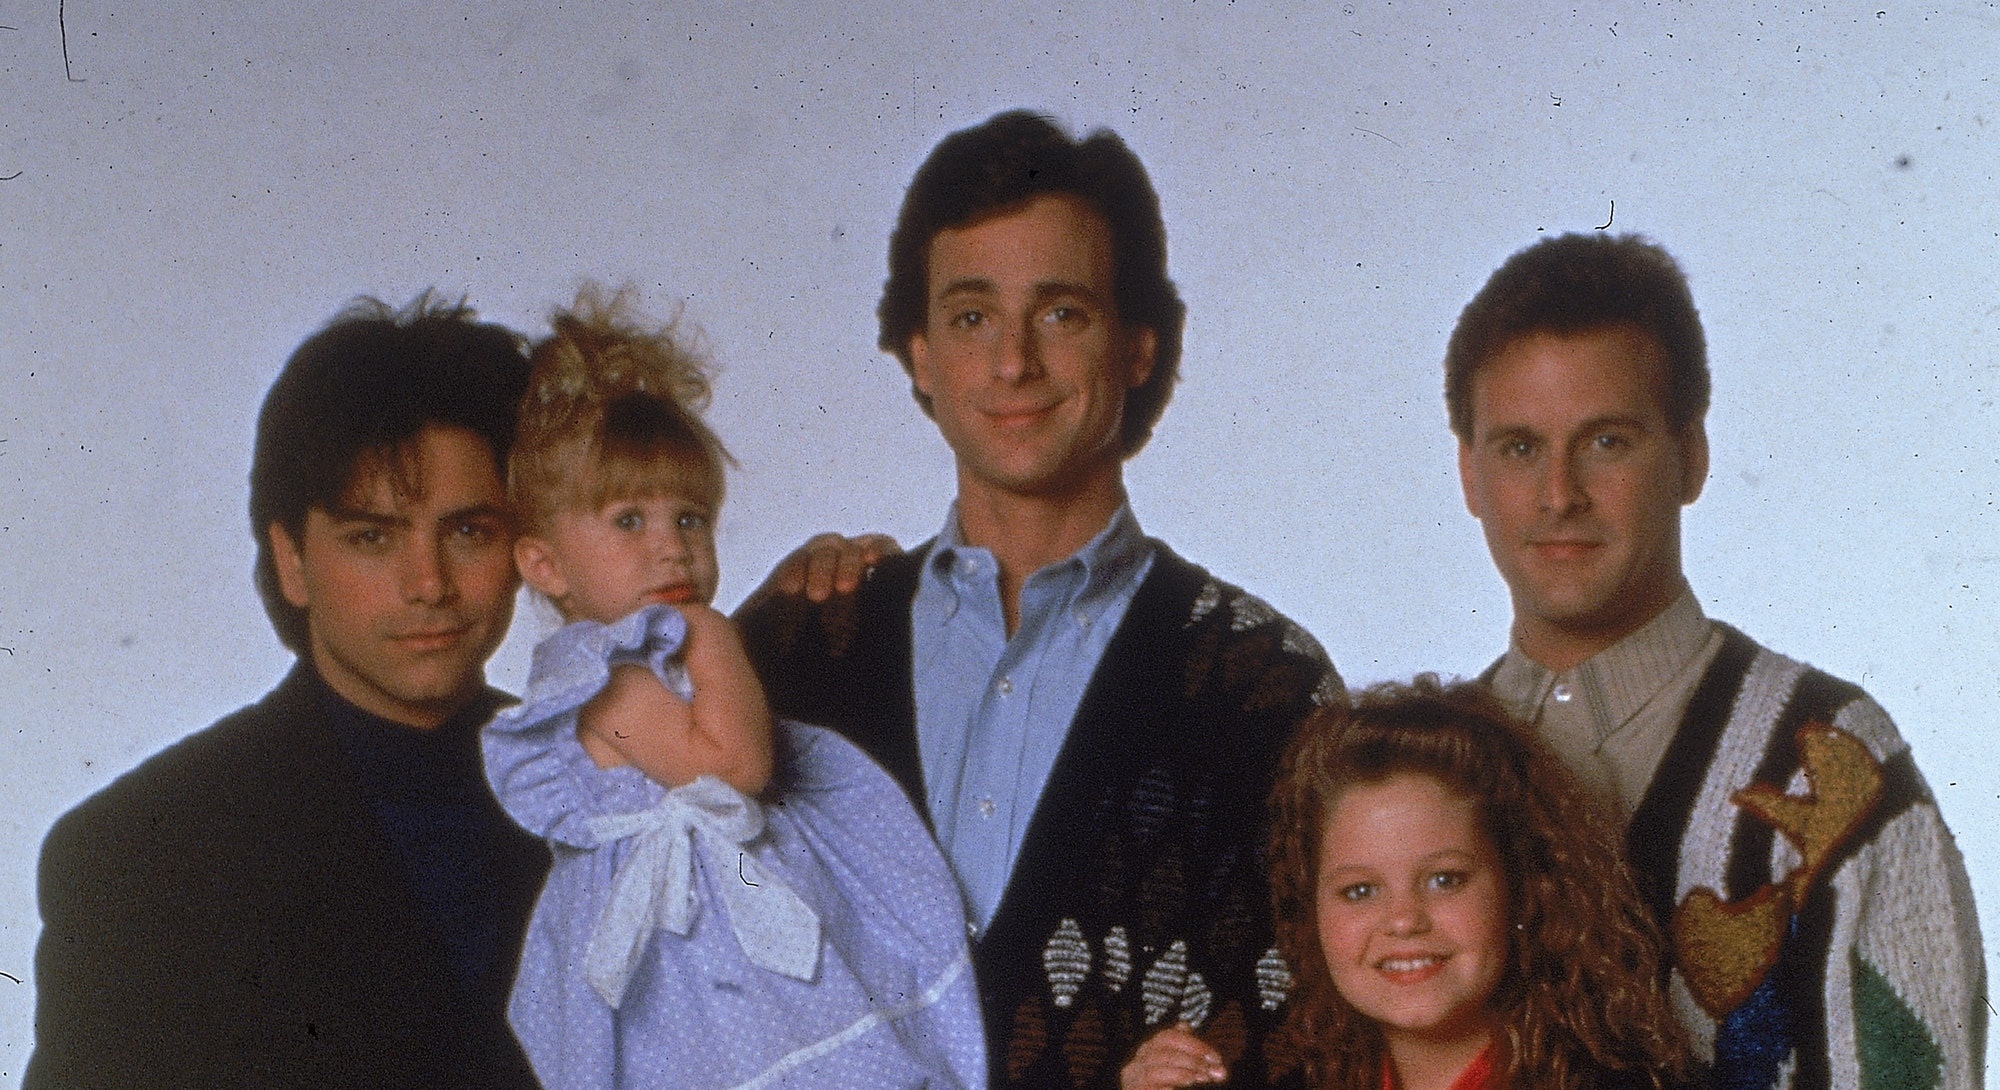 Portrait of the cast of the television program, 'Full House,' (left - right): John Stamos, Jodie Sweetin, Ashley or Mary-Kate Olsen, Bob Saget, Candace Cameron, and David Coulier, c. 1989. (Photo by Fotos International/Getty Images)